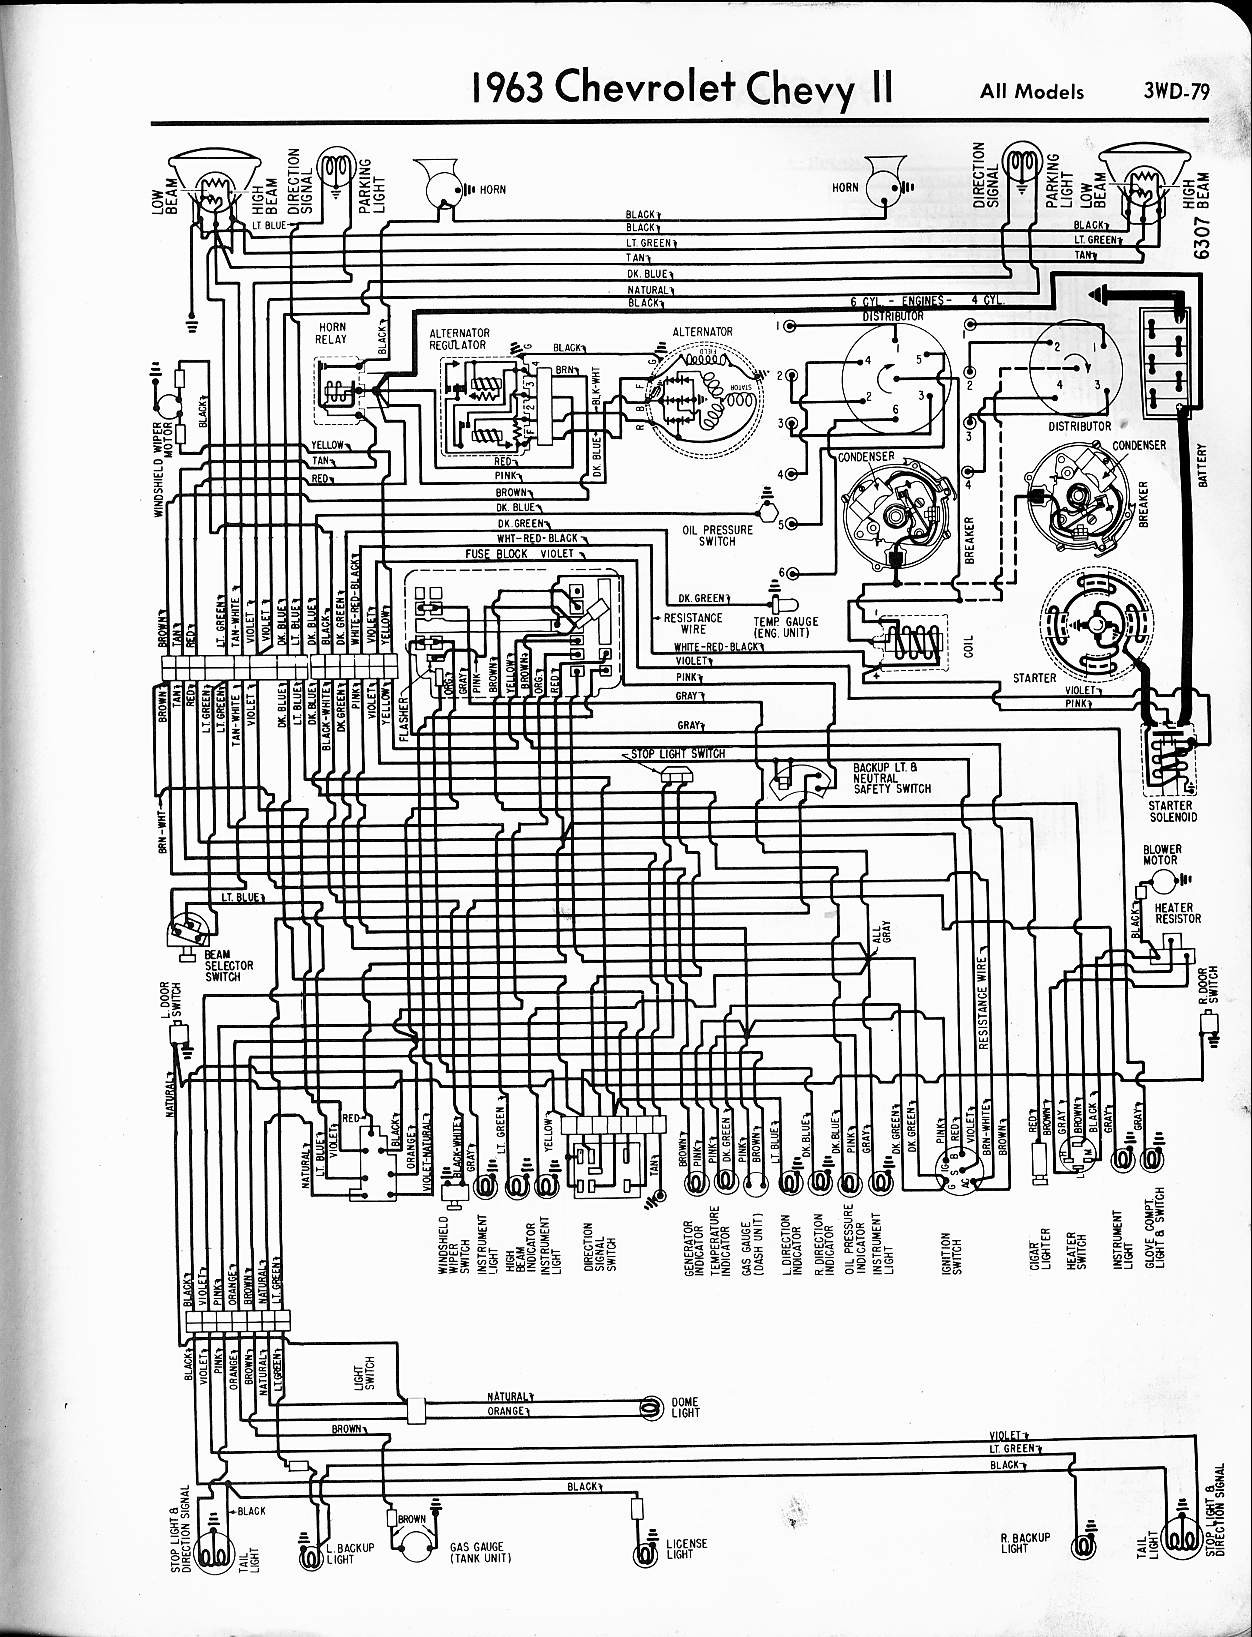 wiring diagram 1965 chevy impala wiring diagram 11 Impala Wiring Schematic 1970 chevy wiring diagram reprint